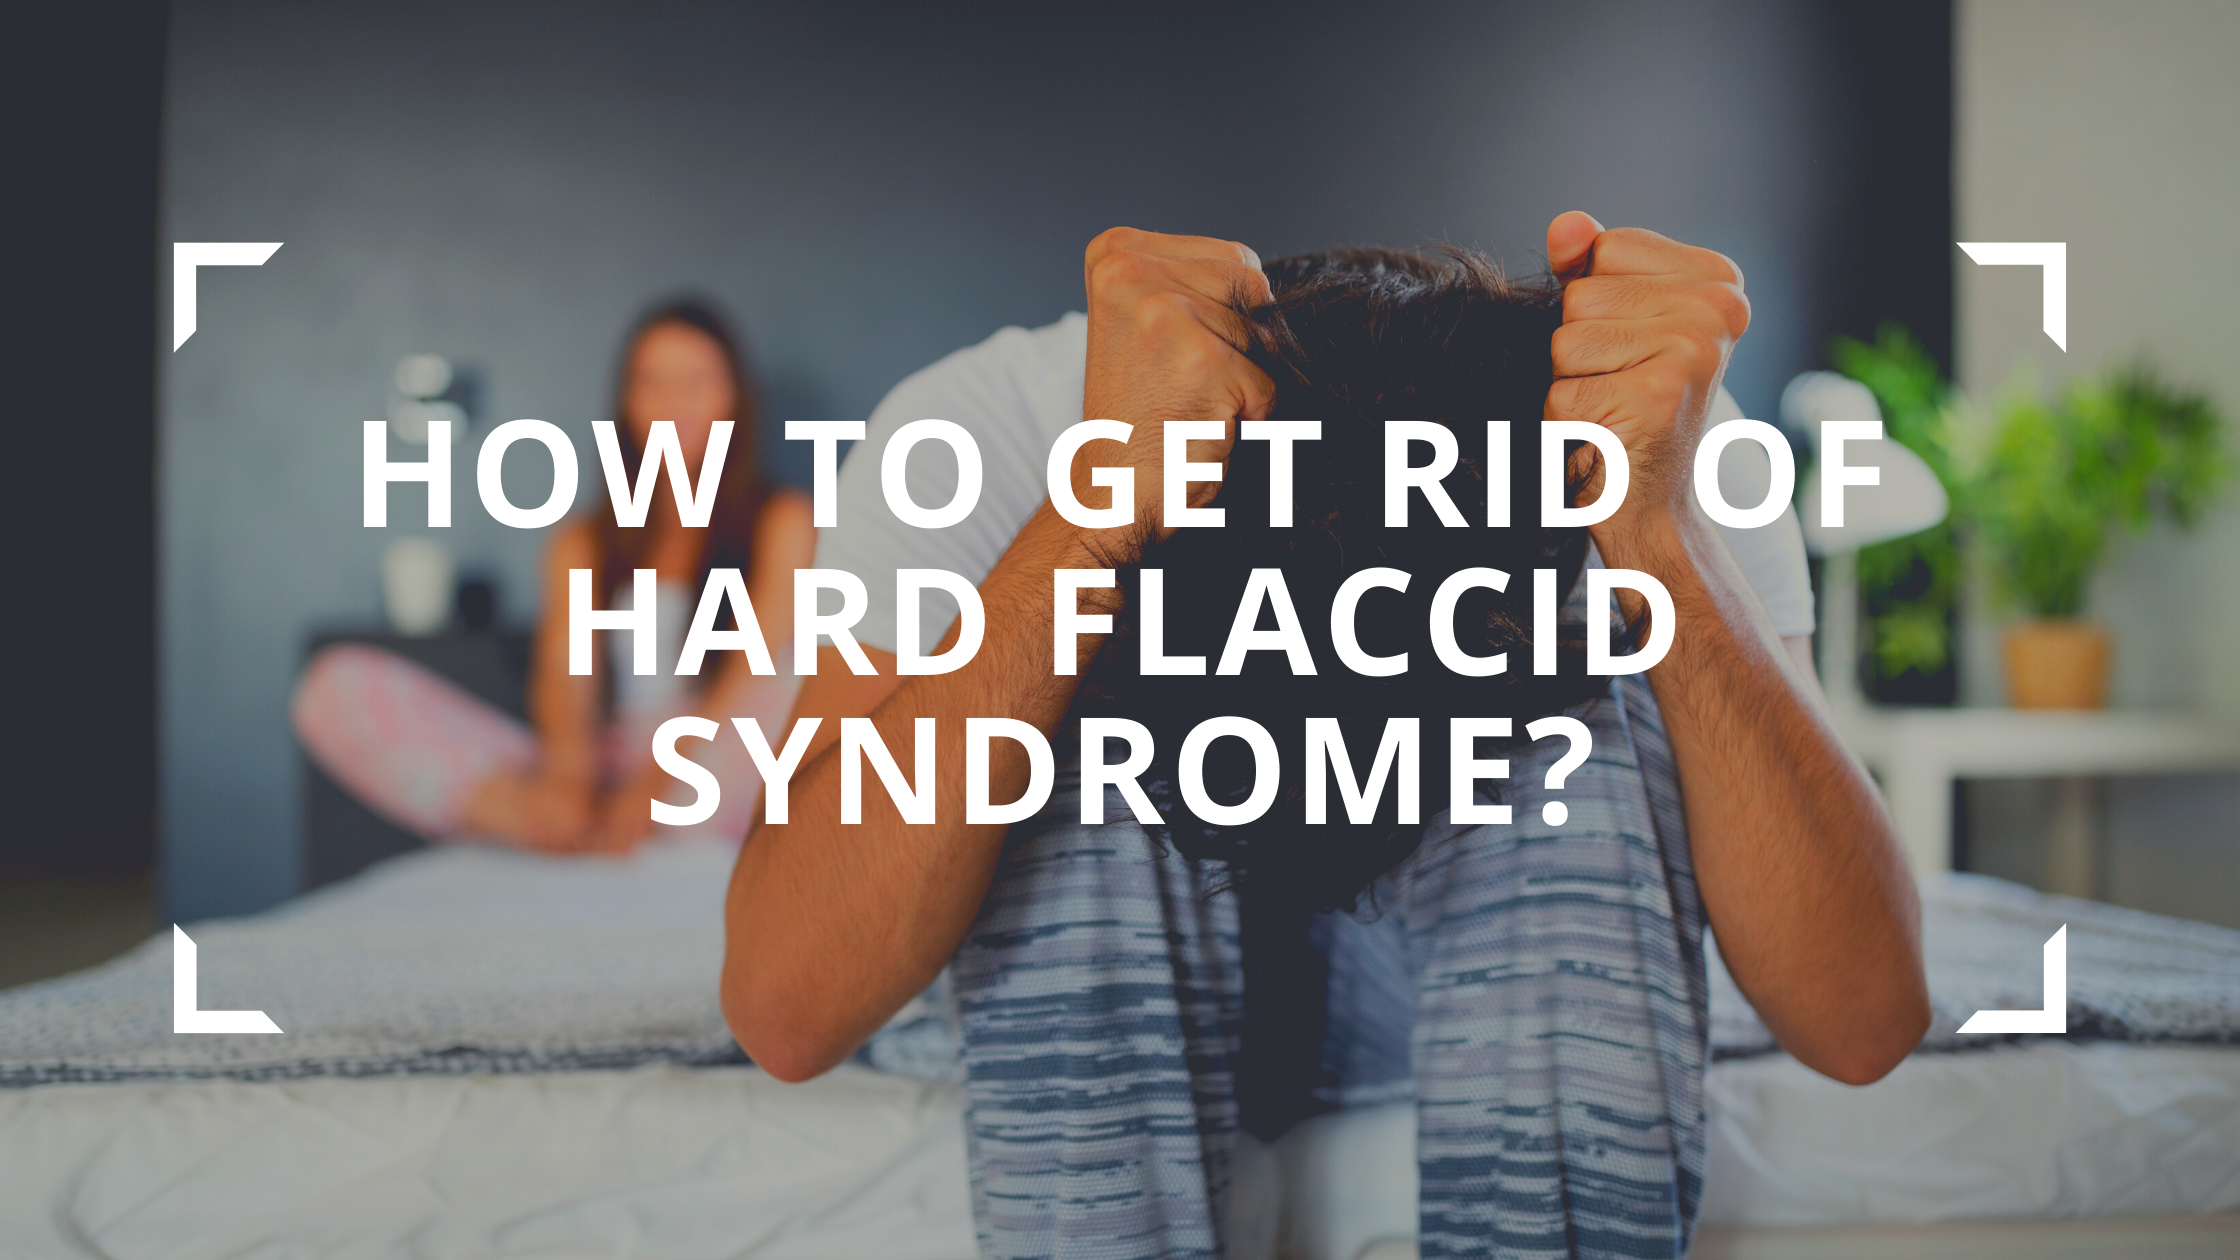 HOW TO GET RID OF HARD FLACCID SYNDROME